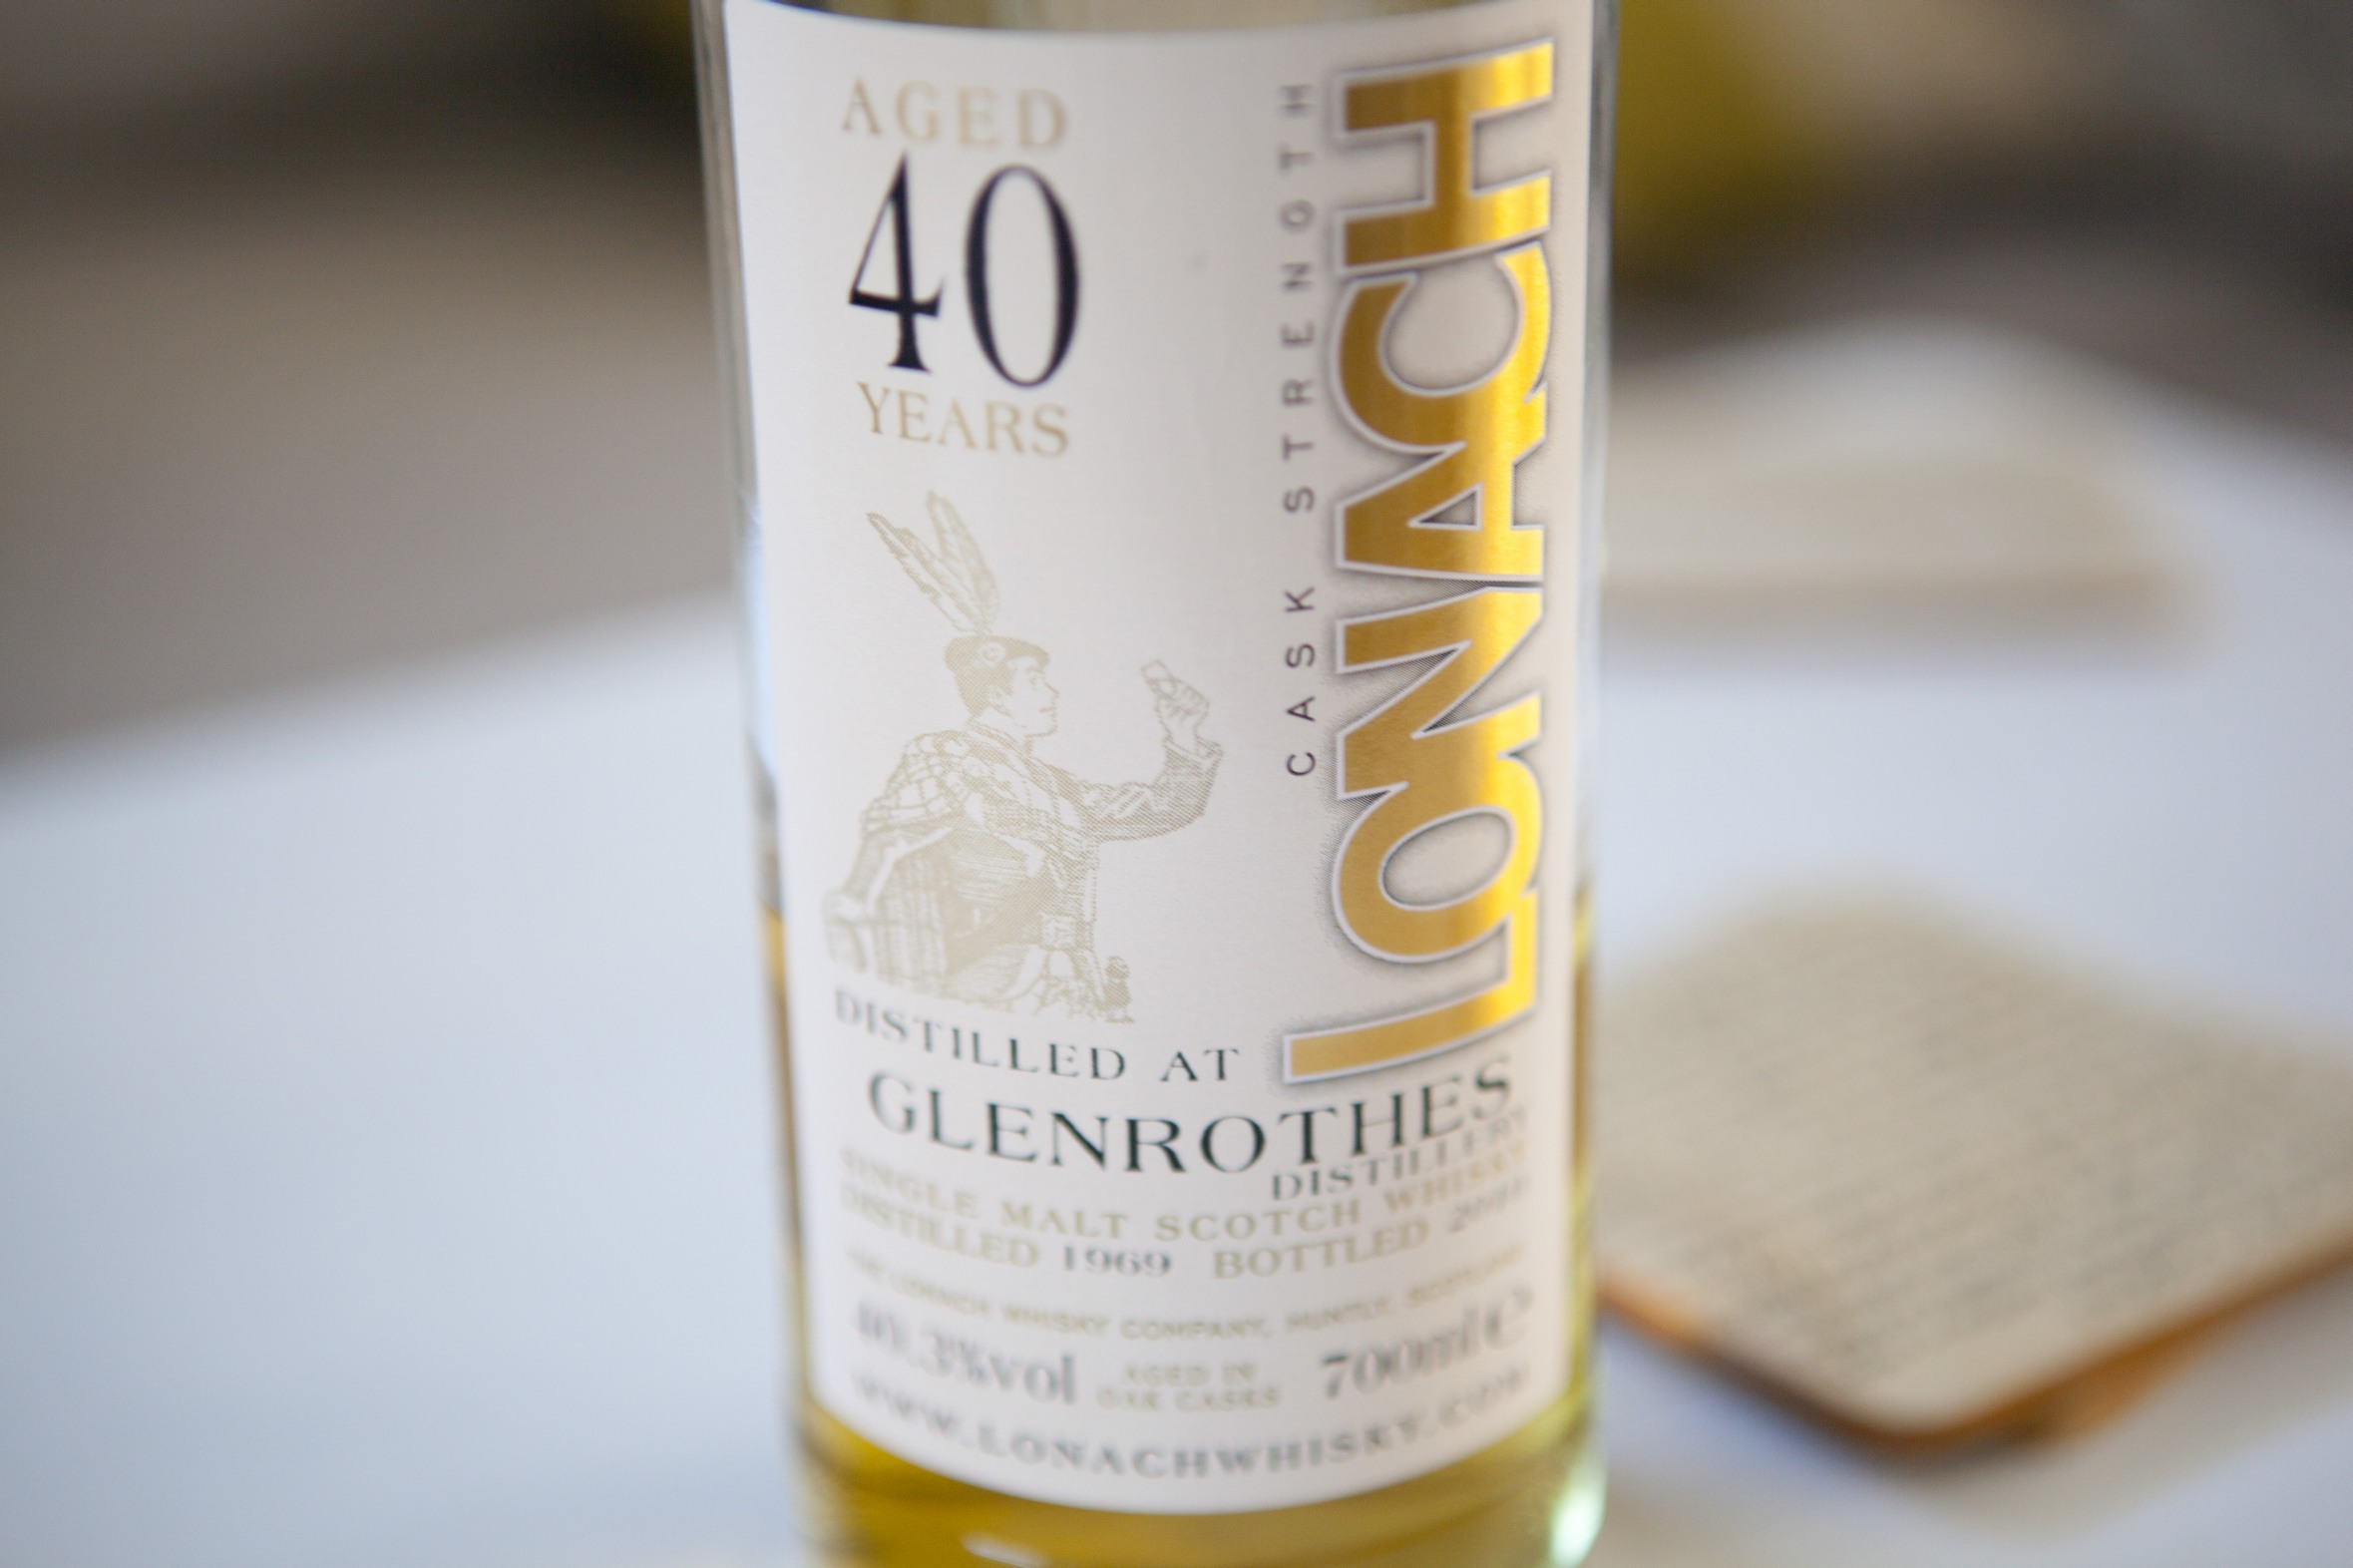 Duncan Taylor Glenrothes 40yr 1969 Lonach Whisky Review